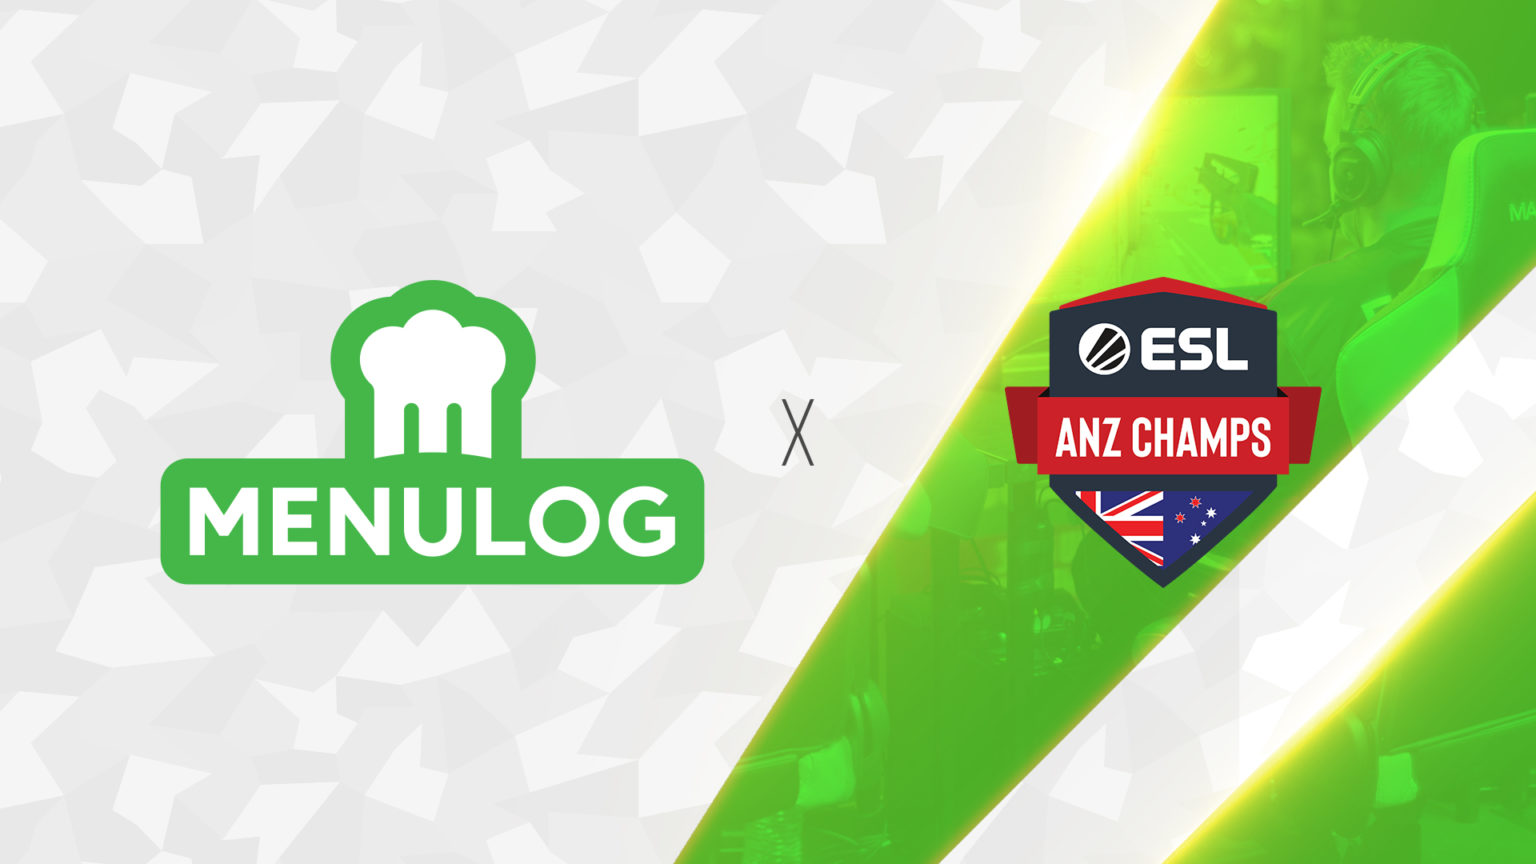 ESL ANZ Champs Logo and Menulog Logo Next To Each Other